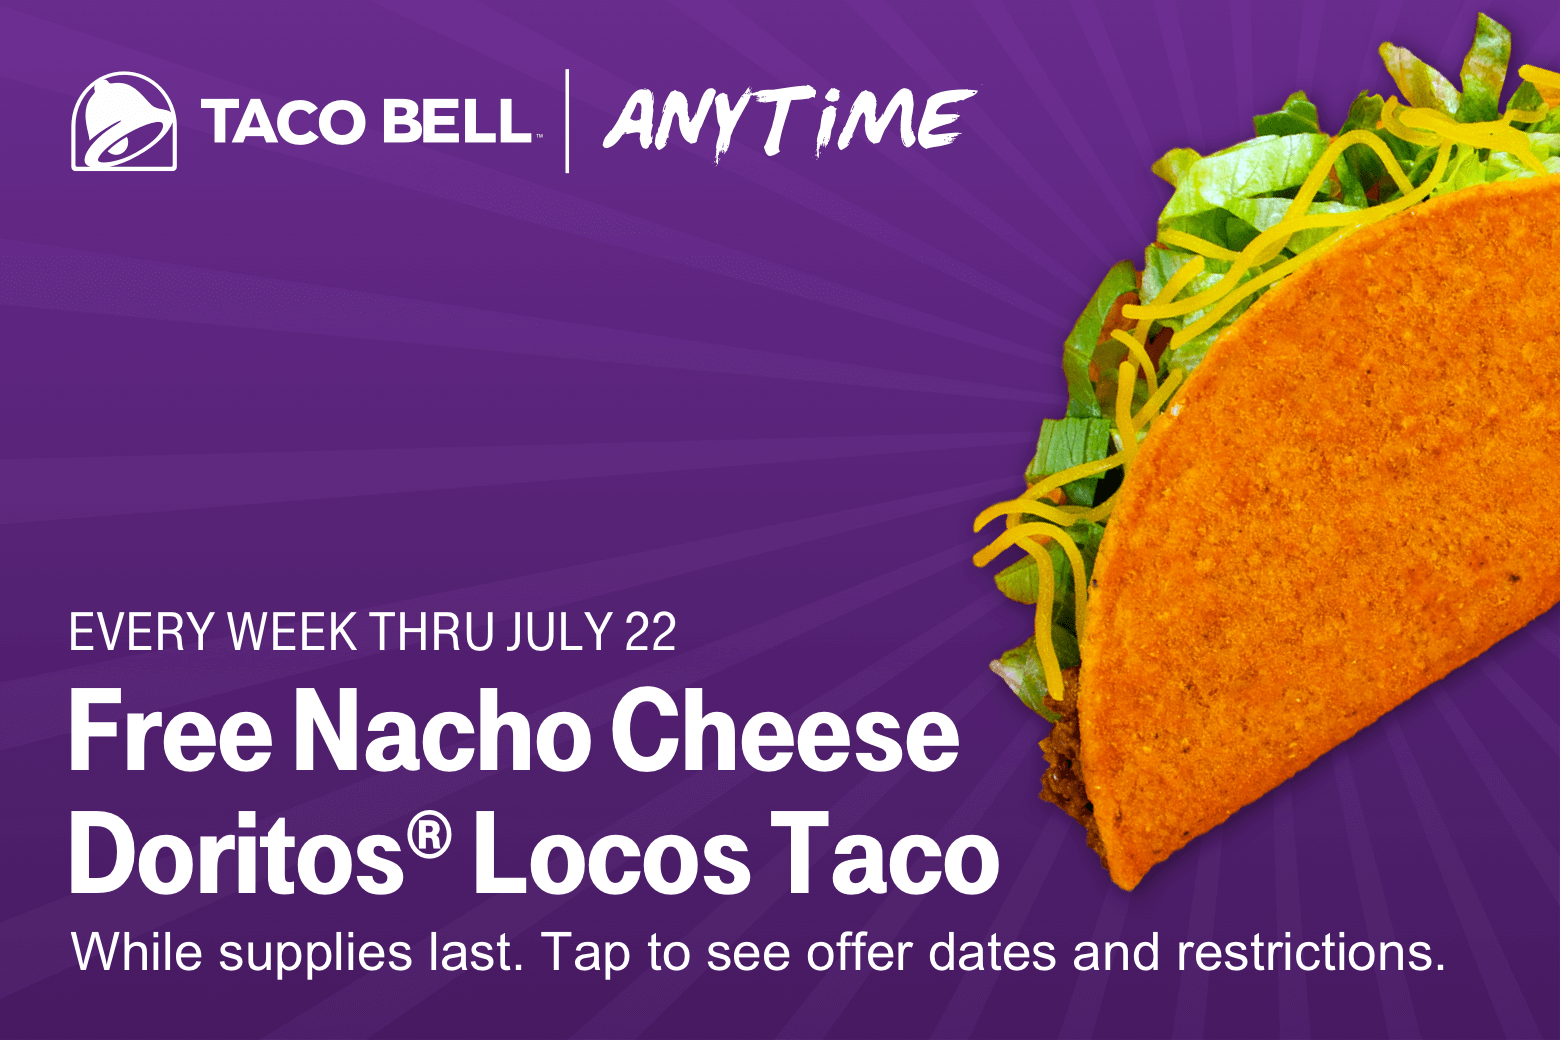 Taco Bell. Anytime. Every week through July 22. Free Nacho Cheese Doritos Locos Taco. While supplies last. Tap to see offer dates and restrictions.